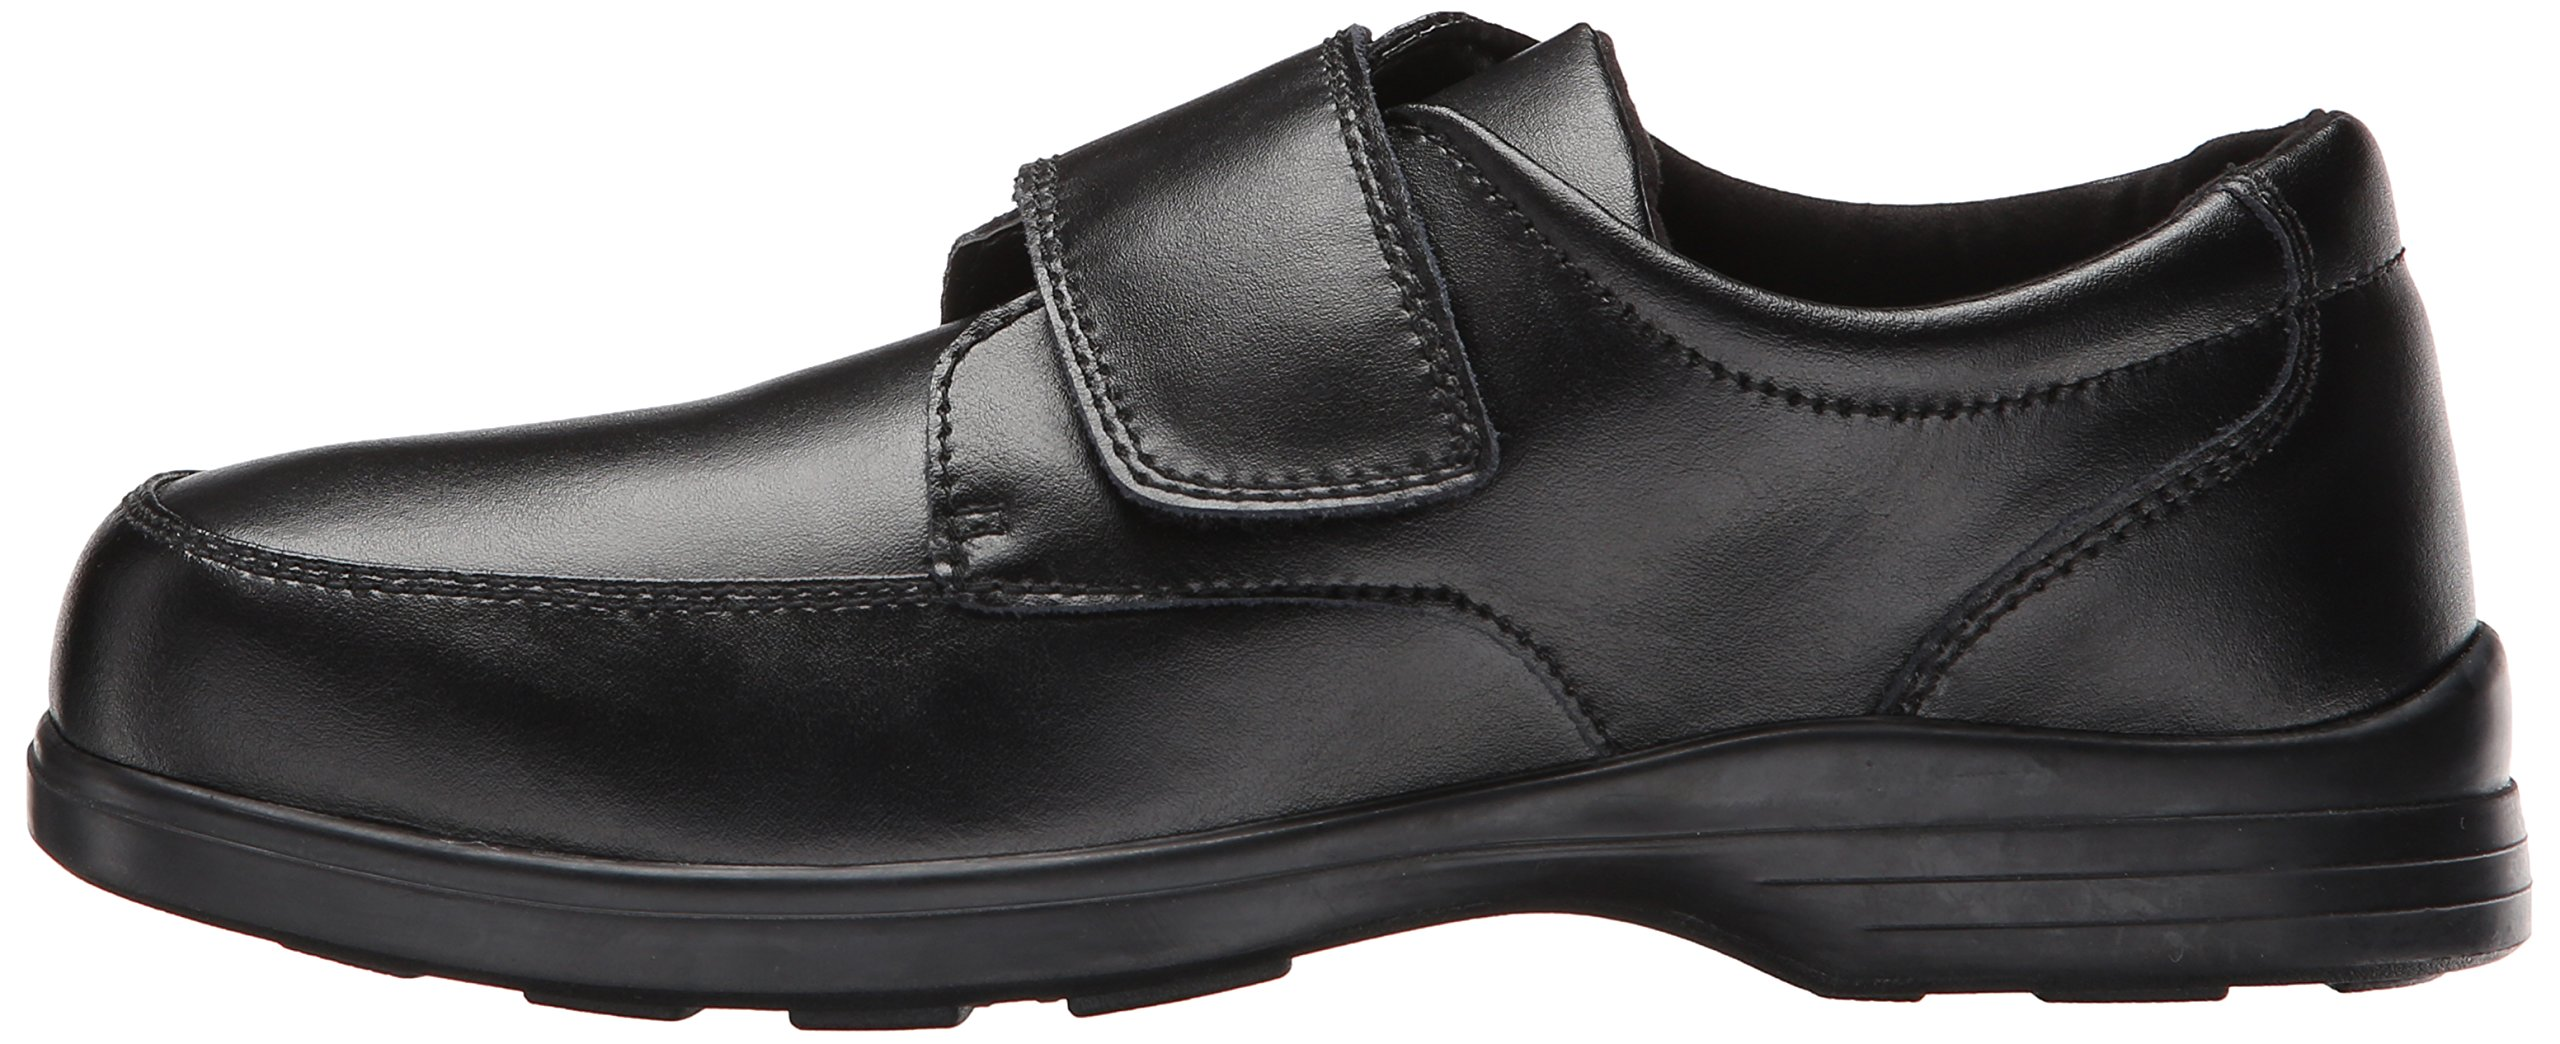 Hush Puppies Gavin Uniform Dress Shoe (Toddler/Little Kid/Big Kid), Black, 3 M US Little Kid by Hush Puppies (Image #5)